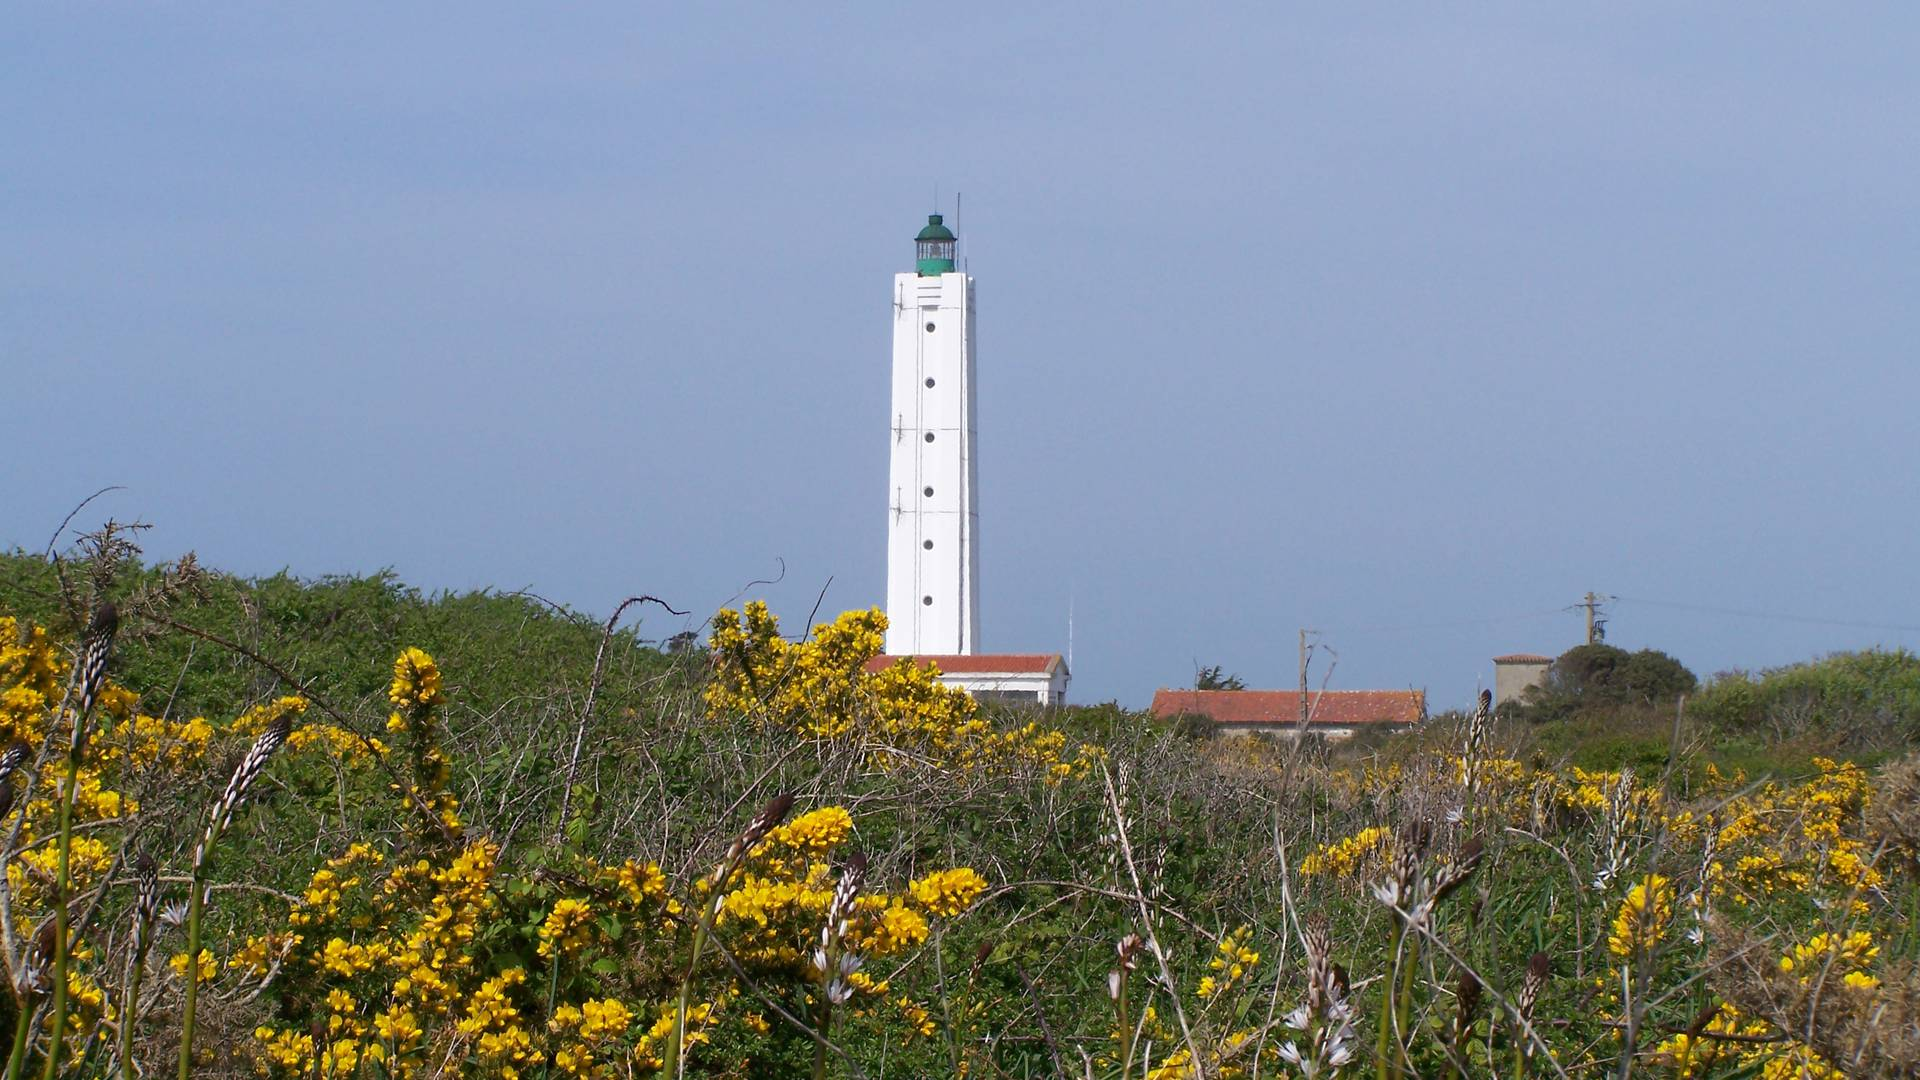 Grand Phare lighthouse, Heritage of the Ile d'Yeu